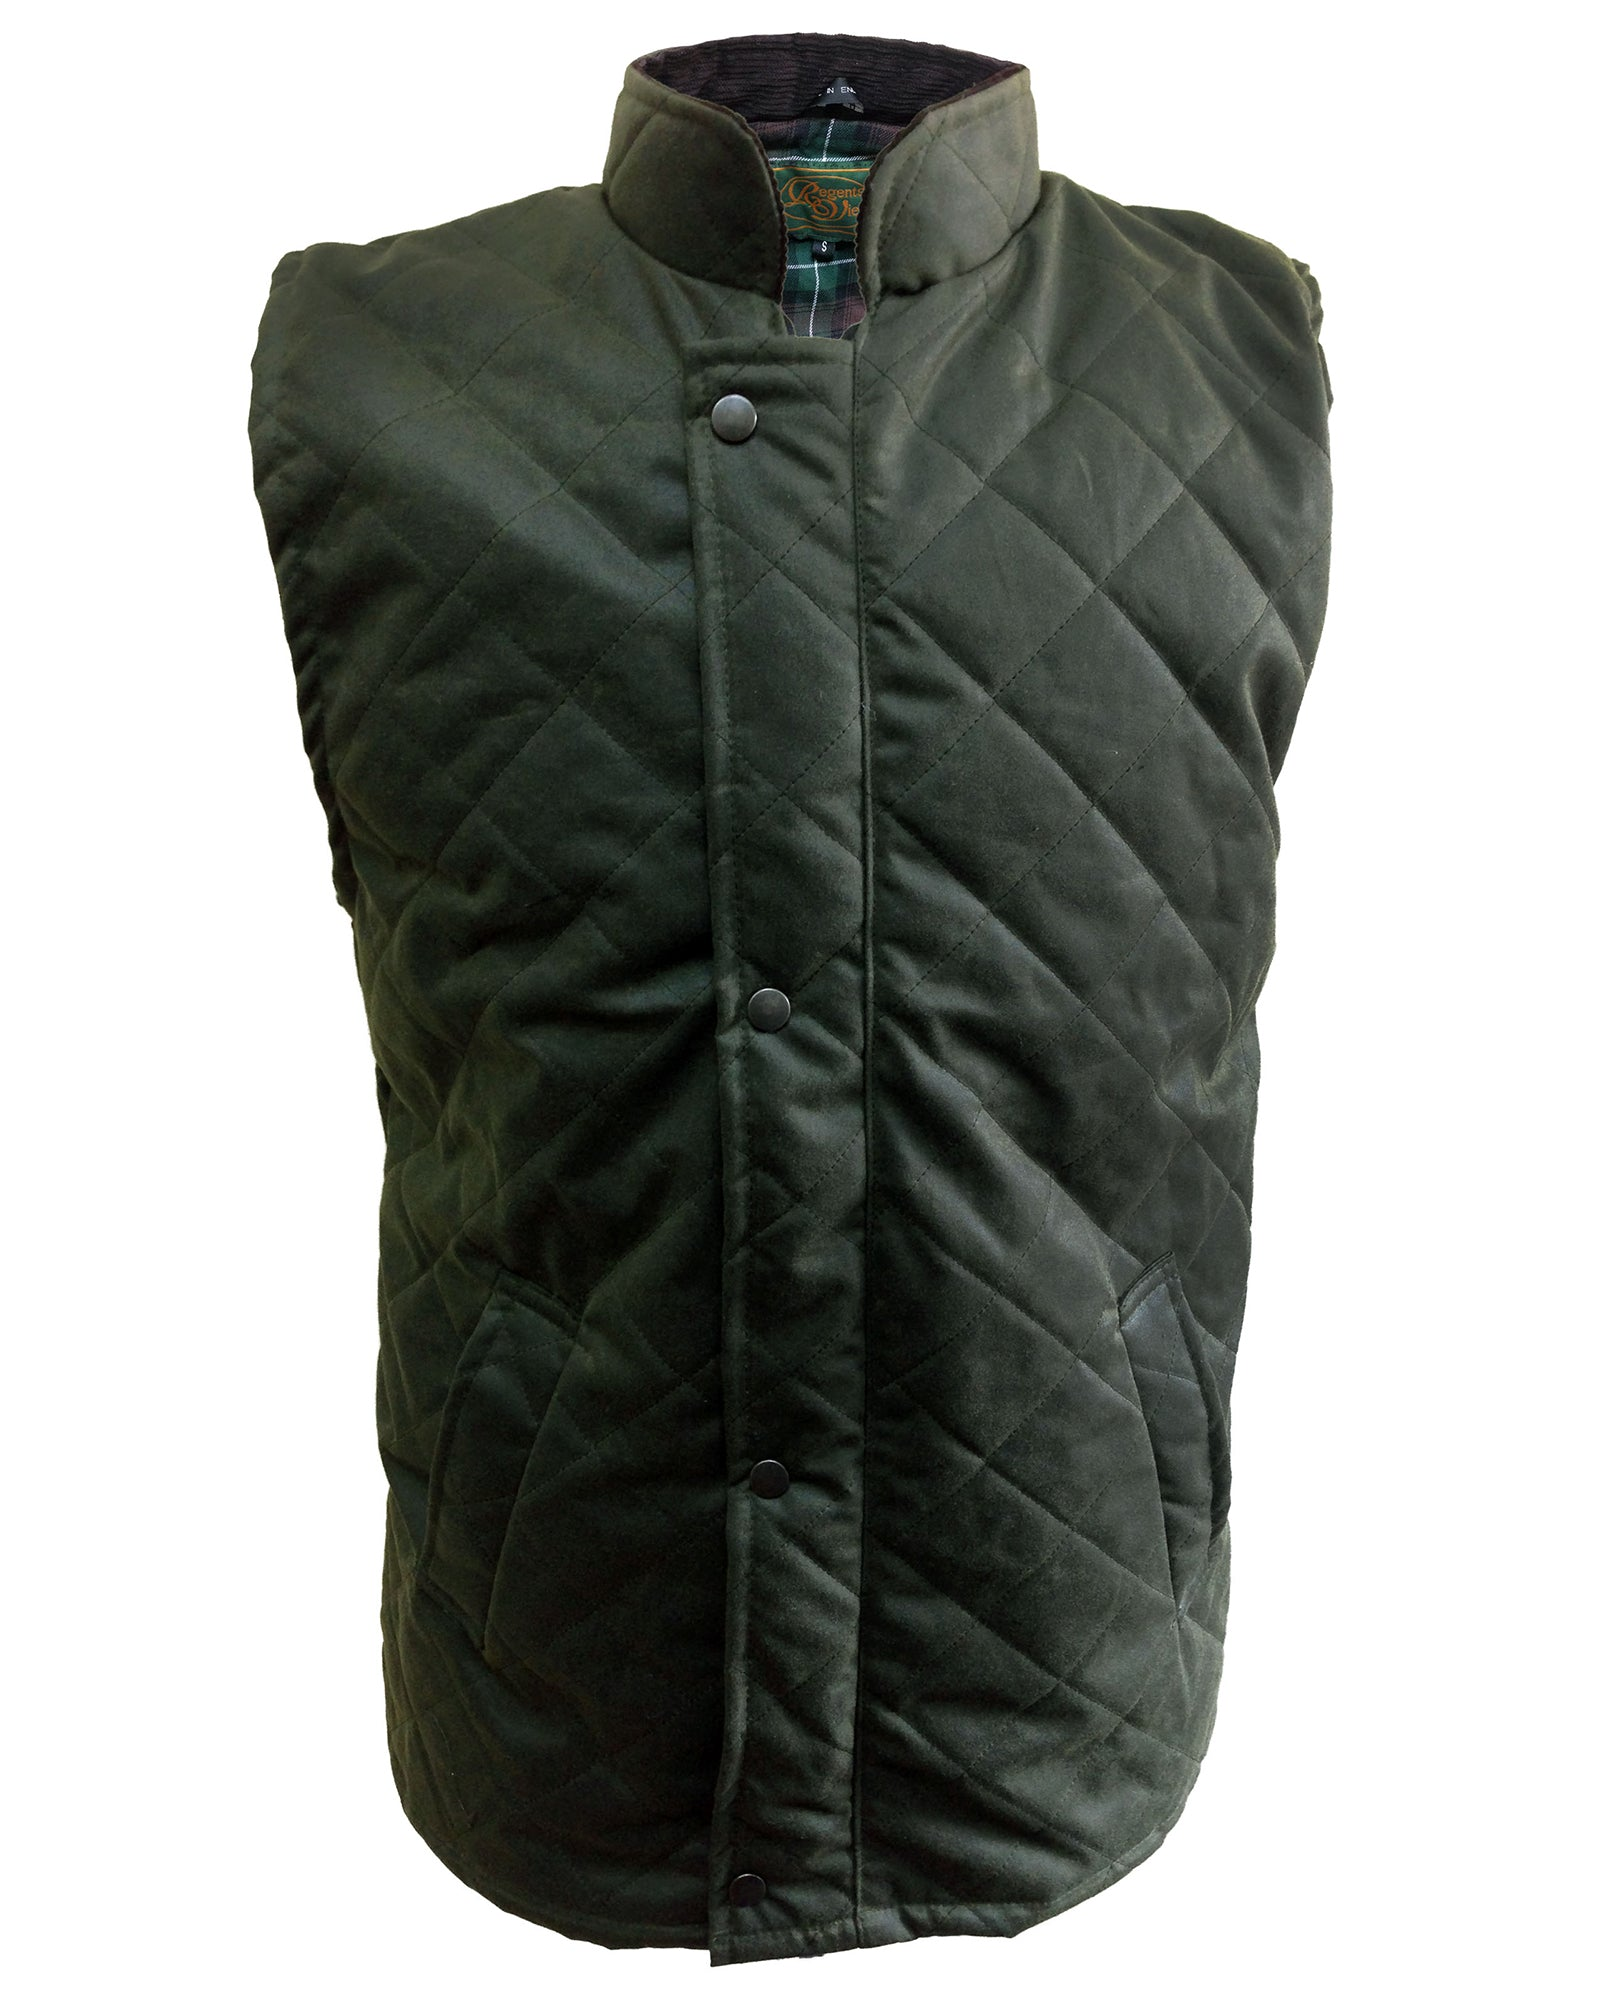 Regents View Diamond Quilted 100% Waxed Cotton Bodywarmer - Olive